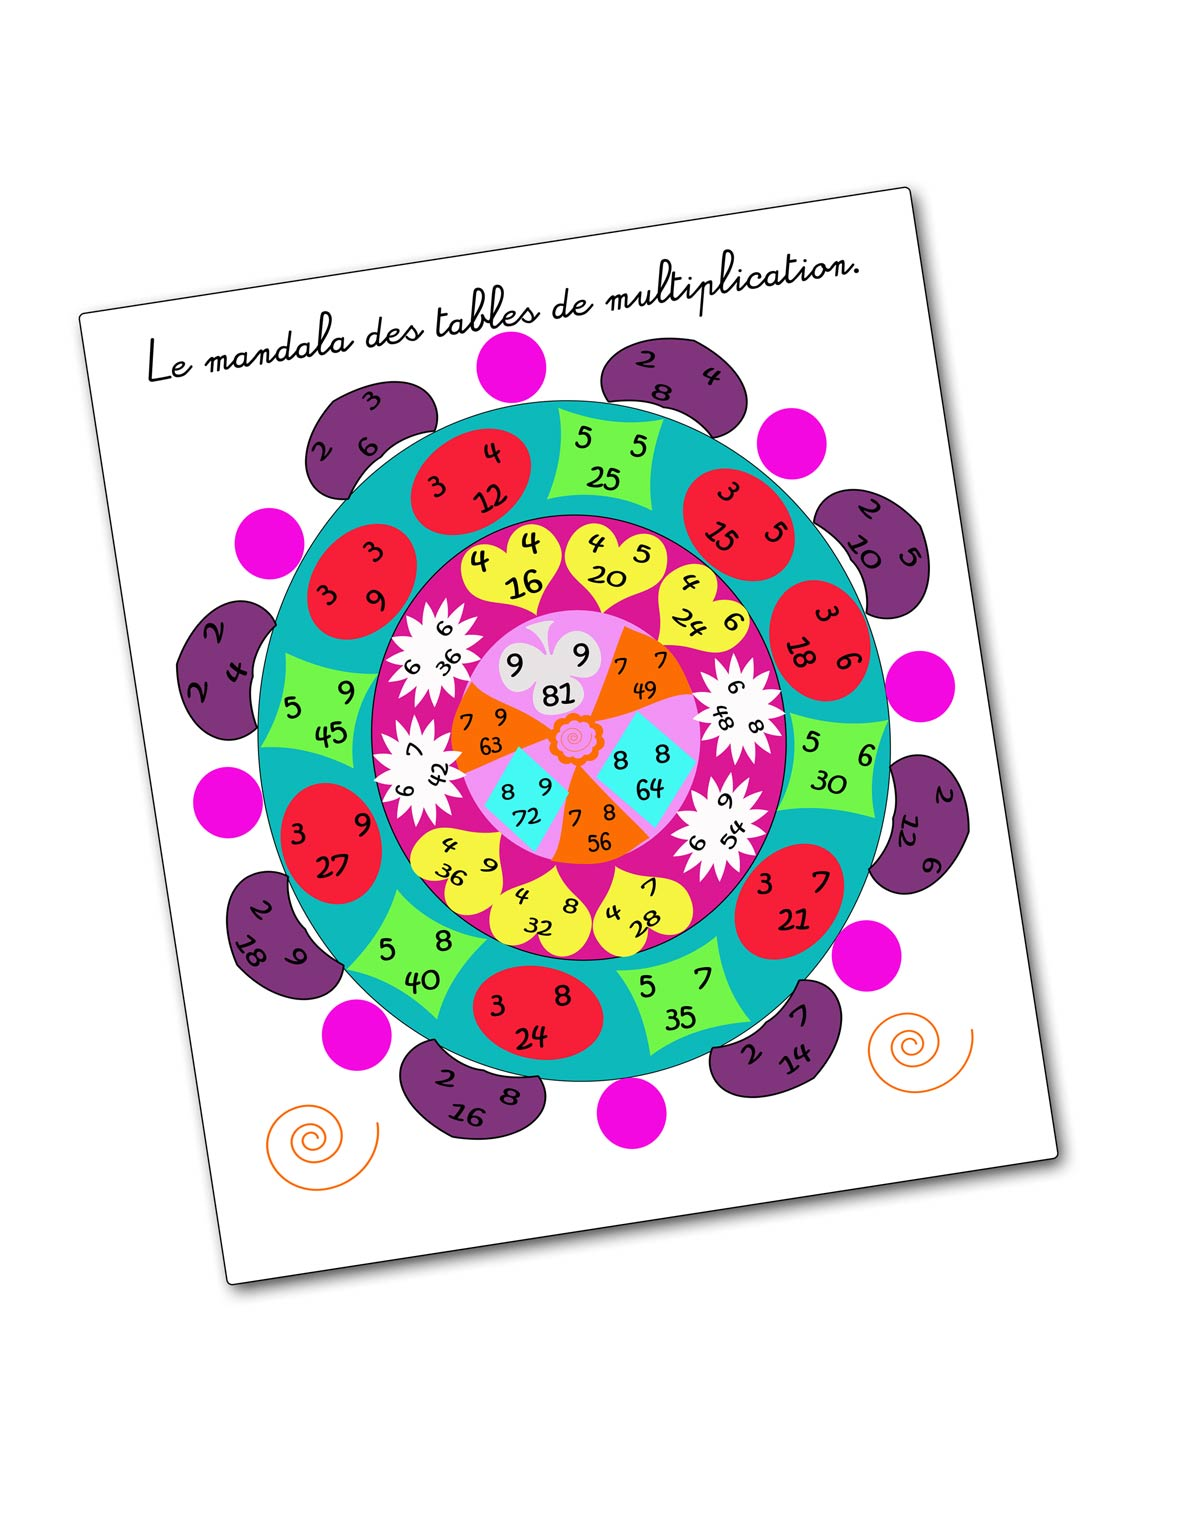 Mandala des tables de multiplication un monde meilleur for La table de 8